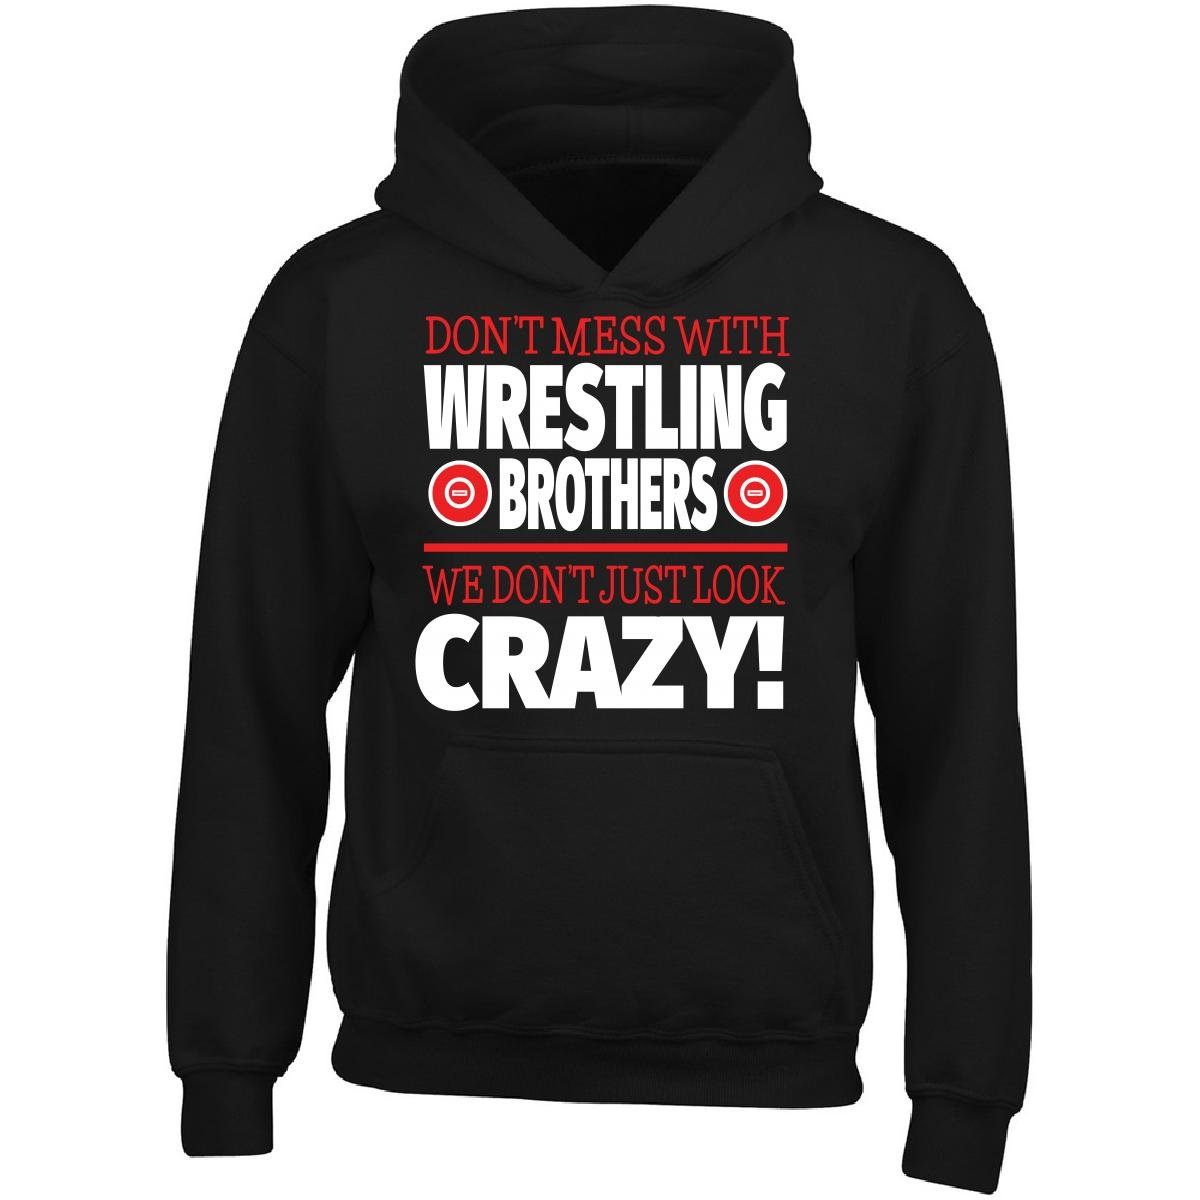 Crazy Wrestling Family - Don't Mess With Wrestling Brothers - Adult Hoodie by Eternally Gifted